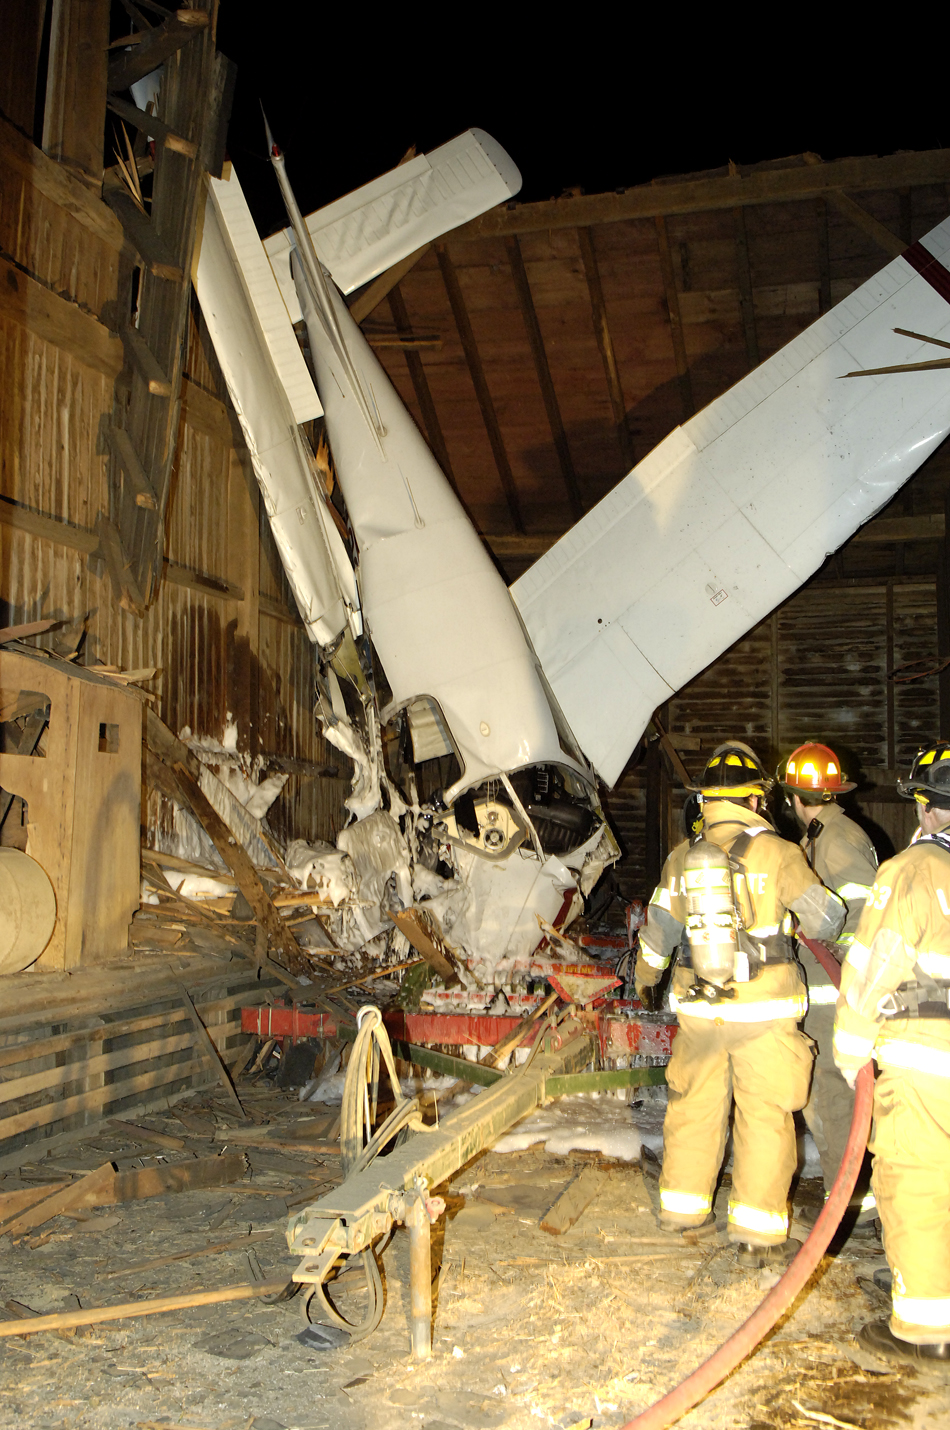 medium resolution of on saturday january 28 a piper warrior that witnesses said was wobbling and shaking crashed into a barn near lancaster pa injuring the